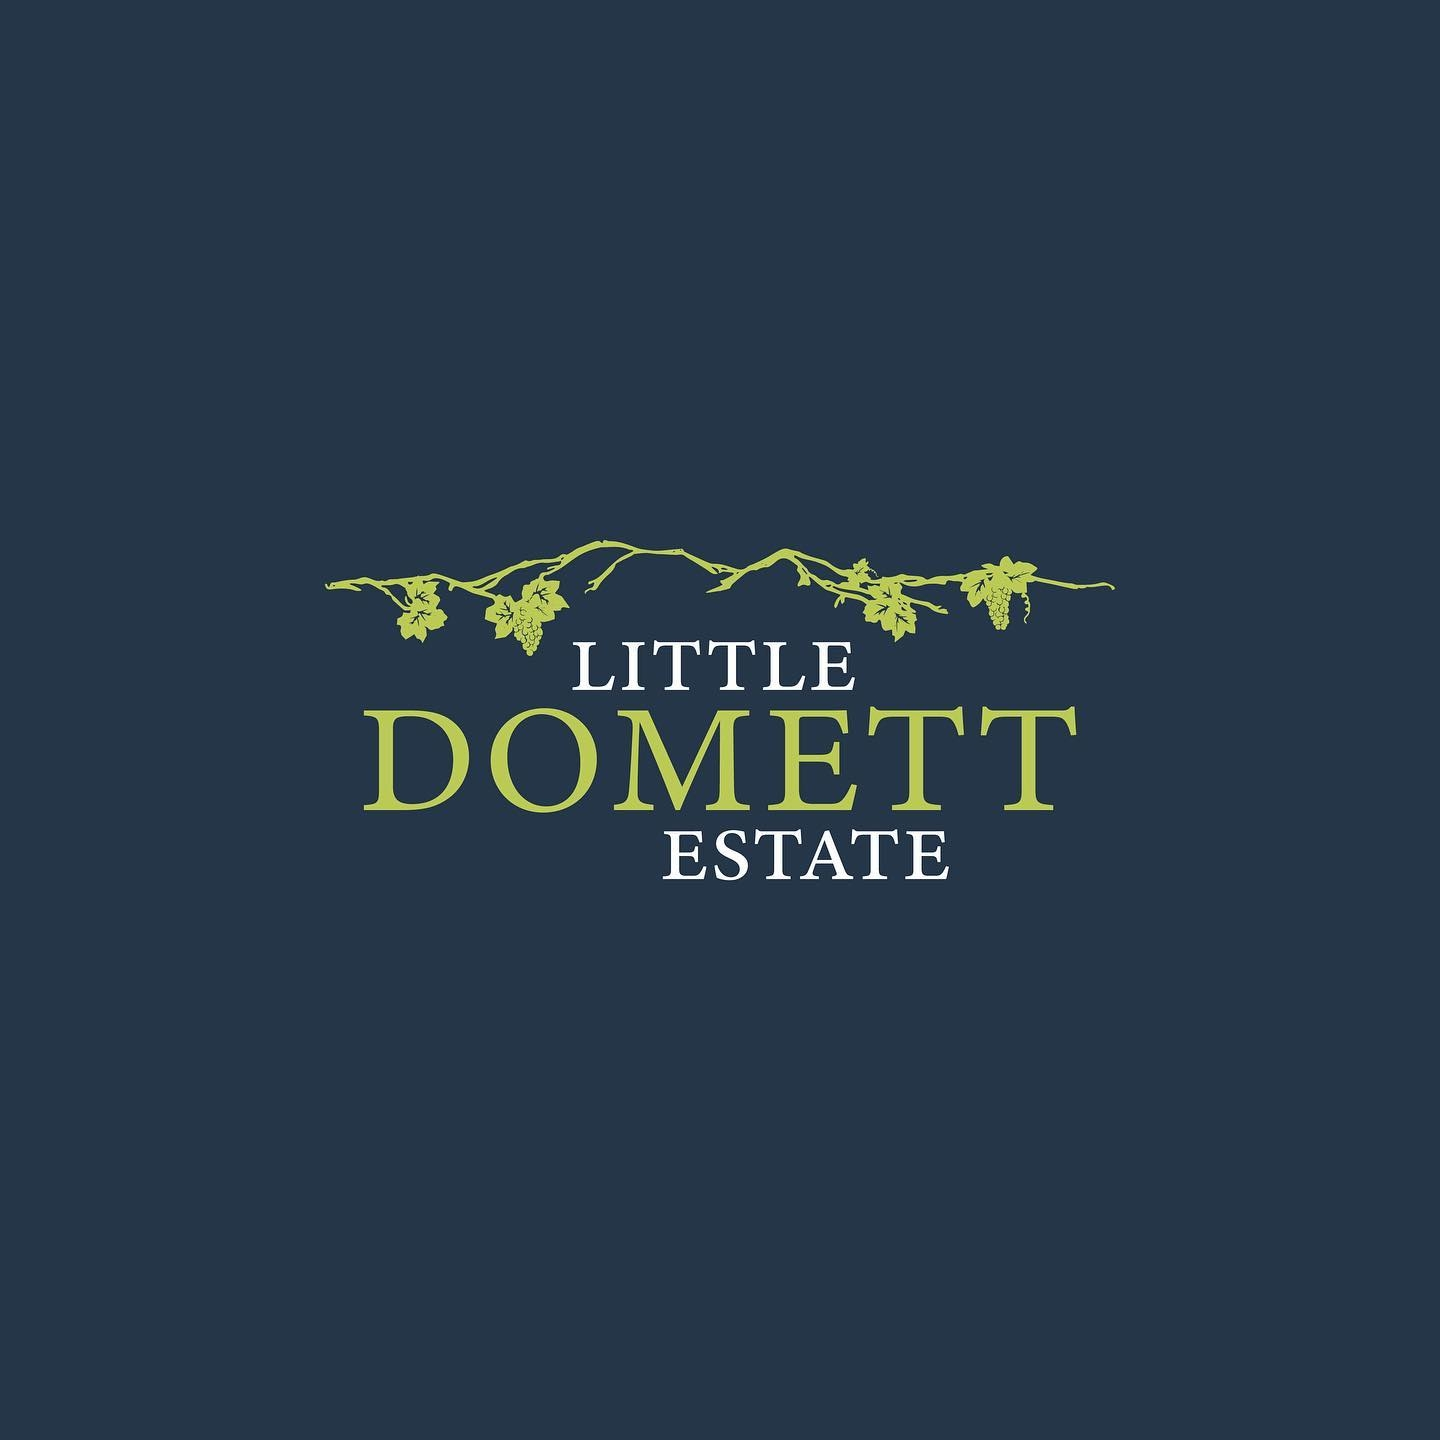 Little Domett Estate Brand - Reflect the landscape and terroir in the brand